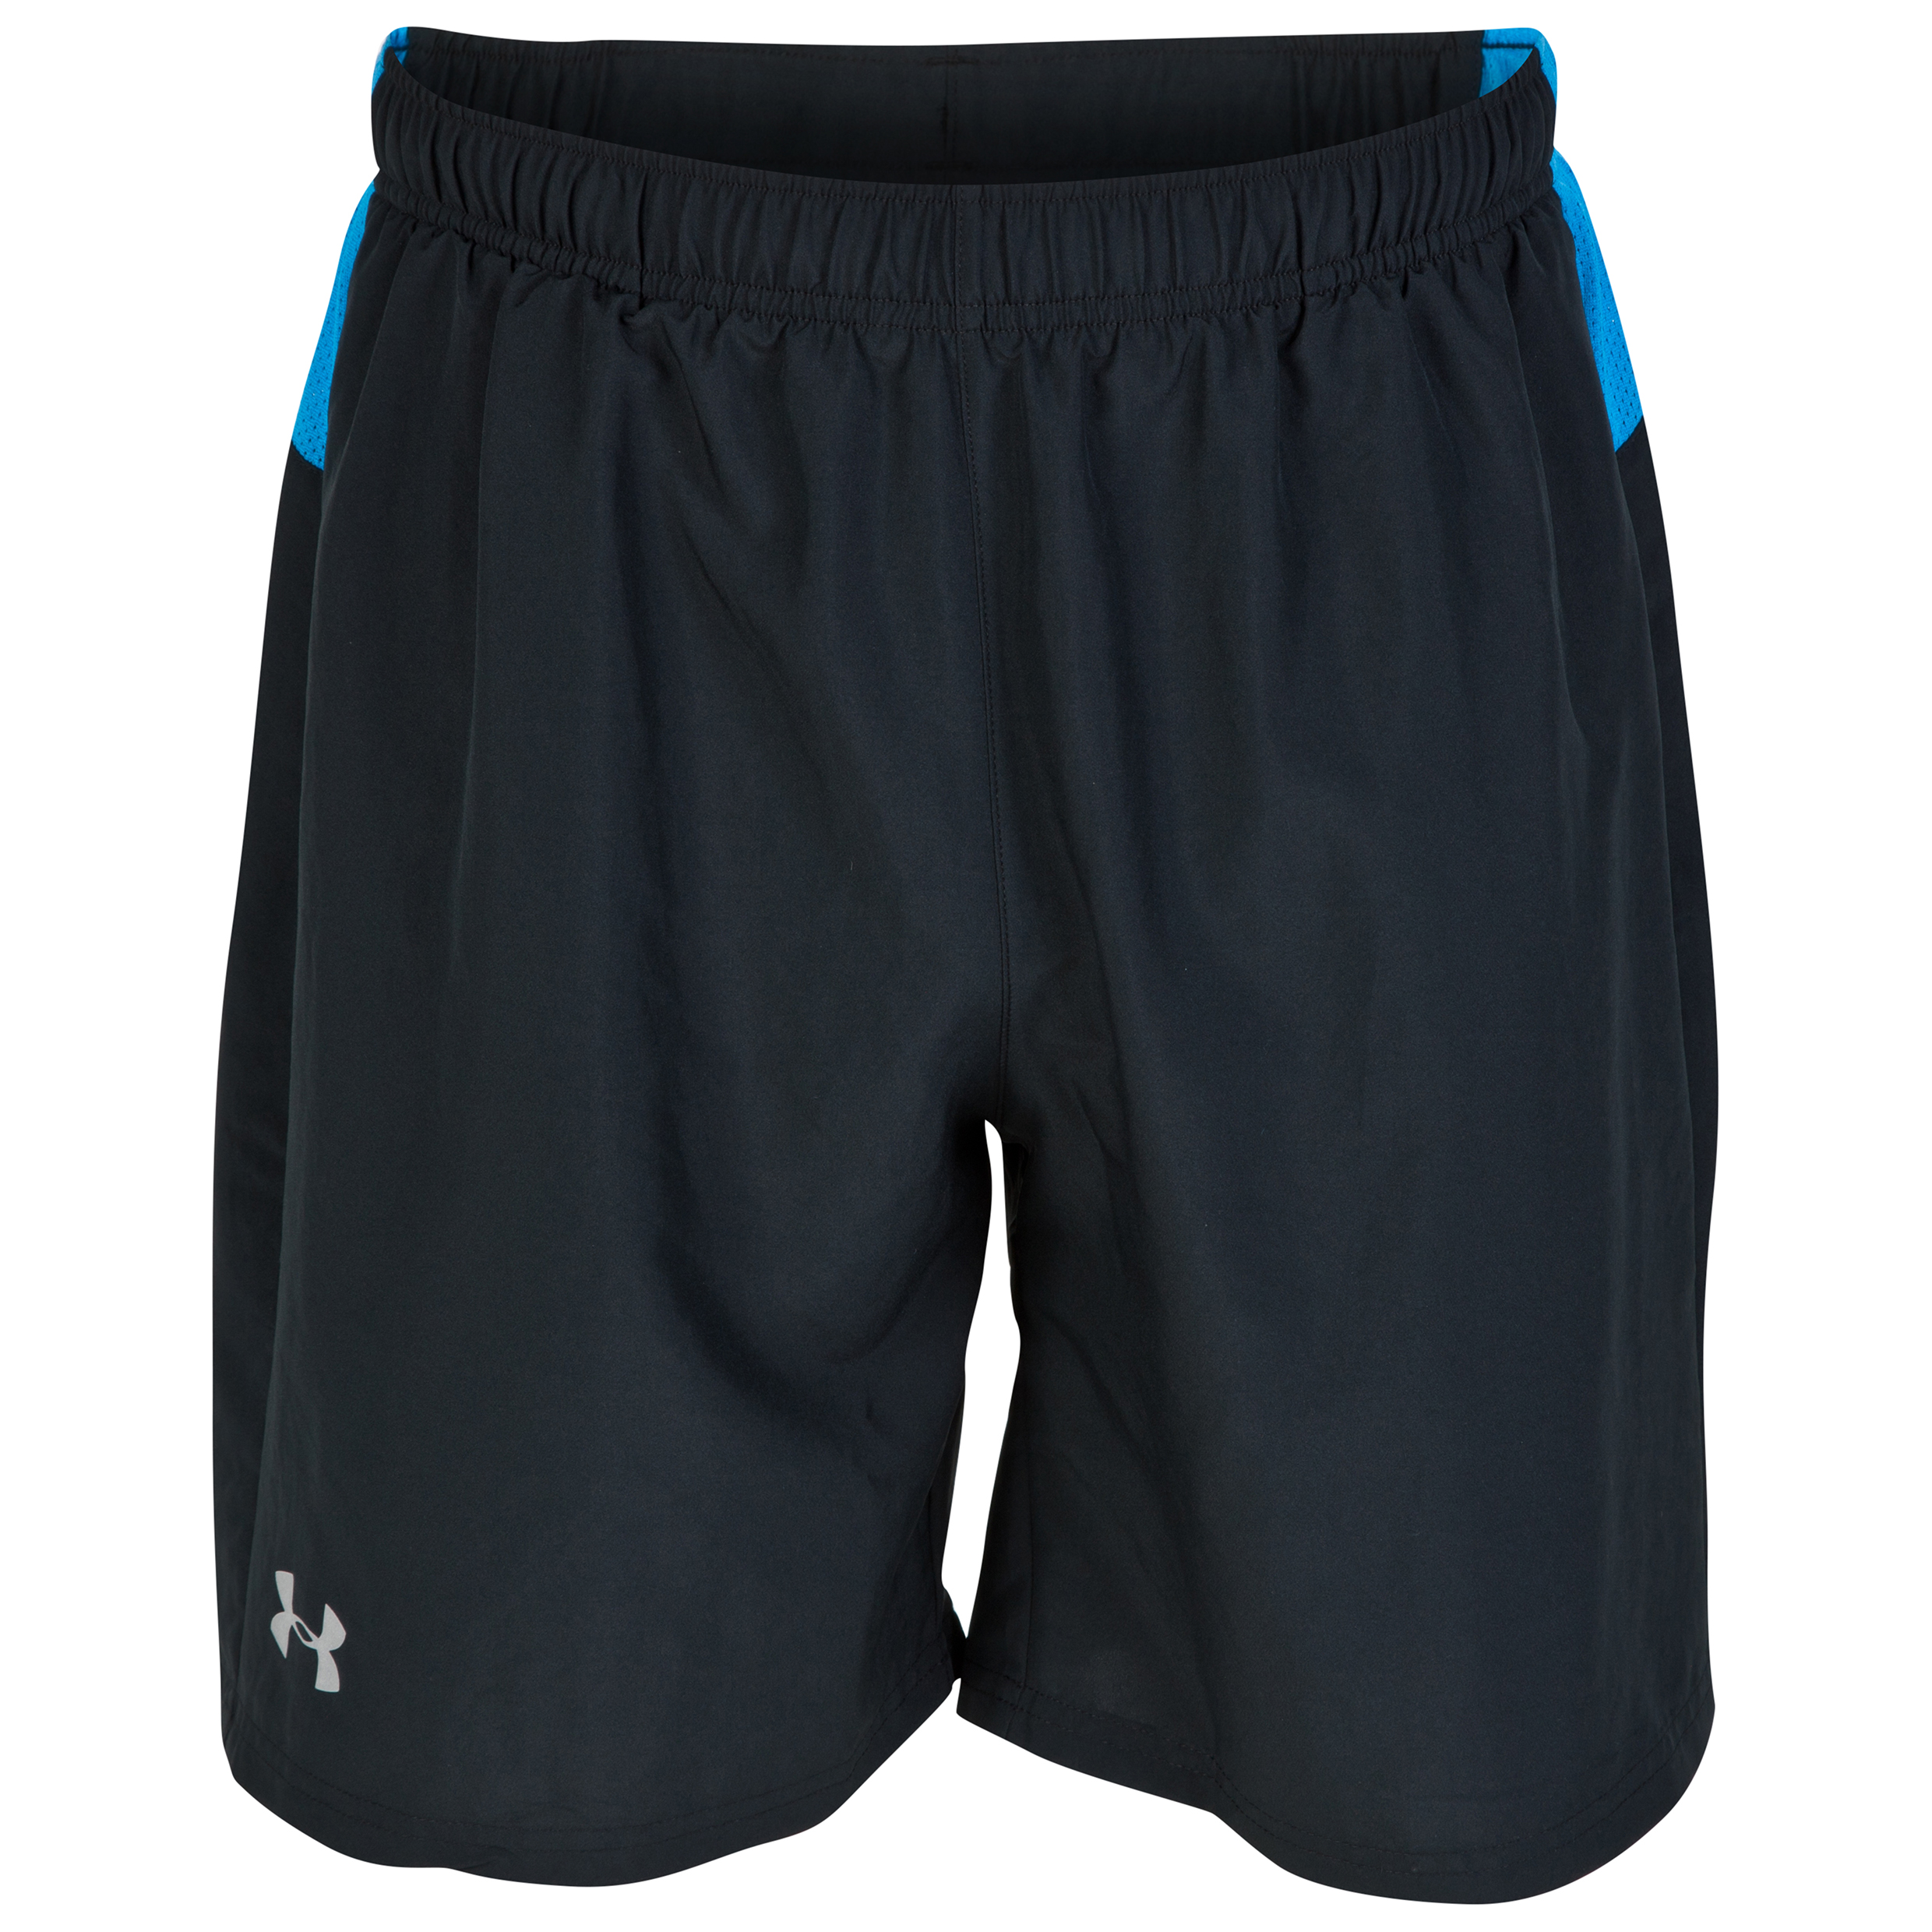 Under Armour Sixth Man 2-In-1 Short Black